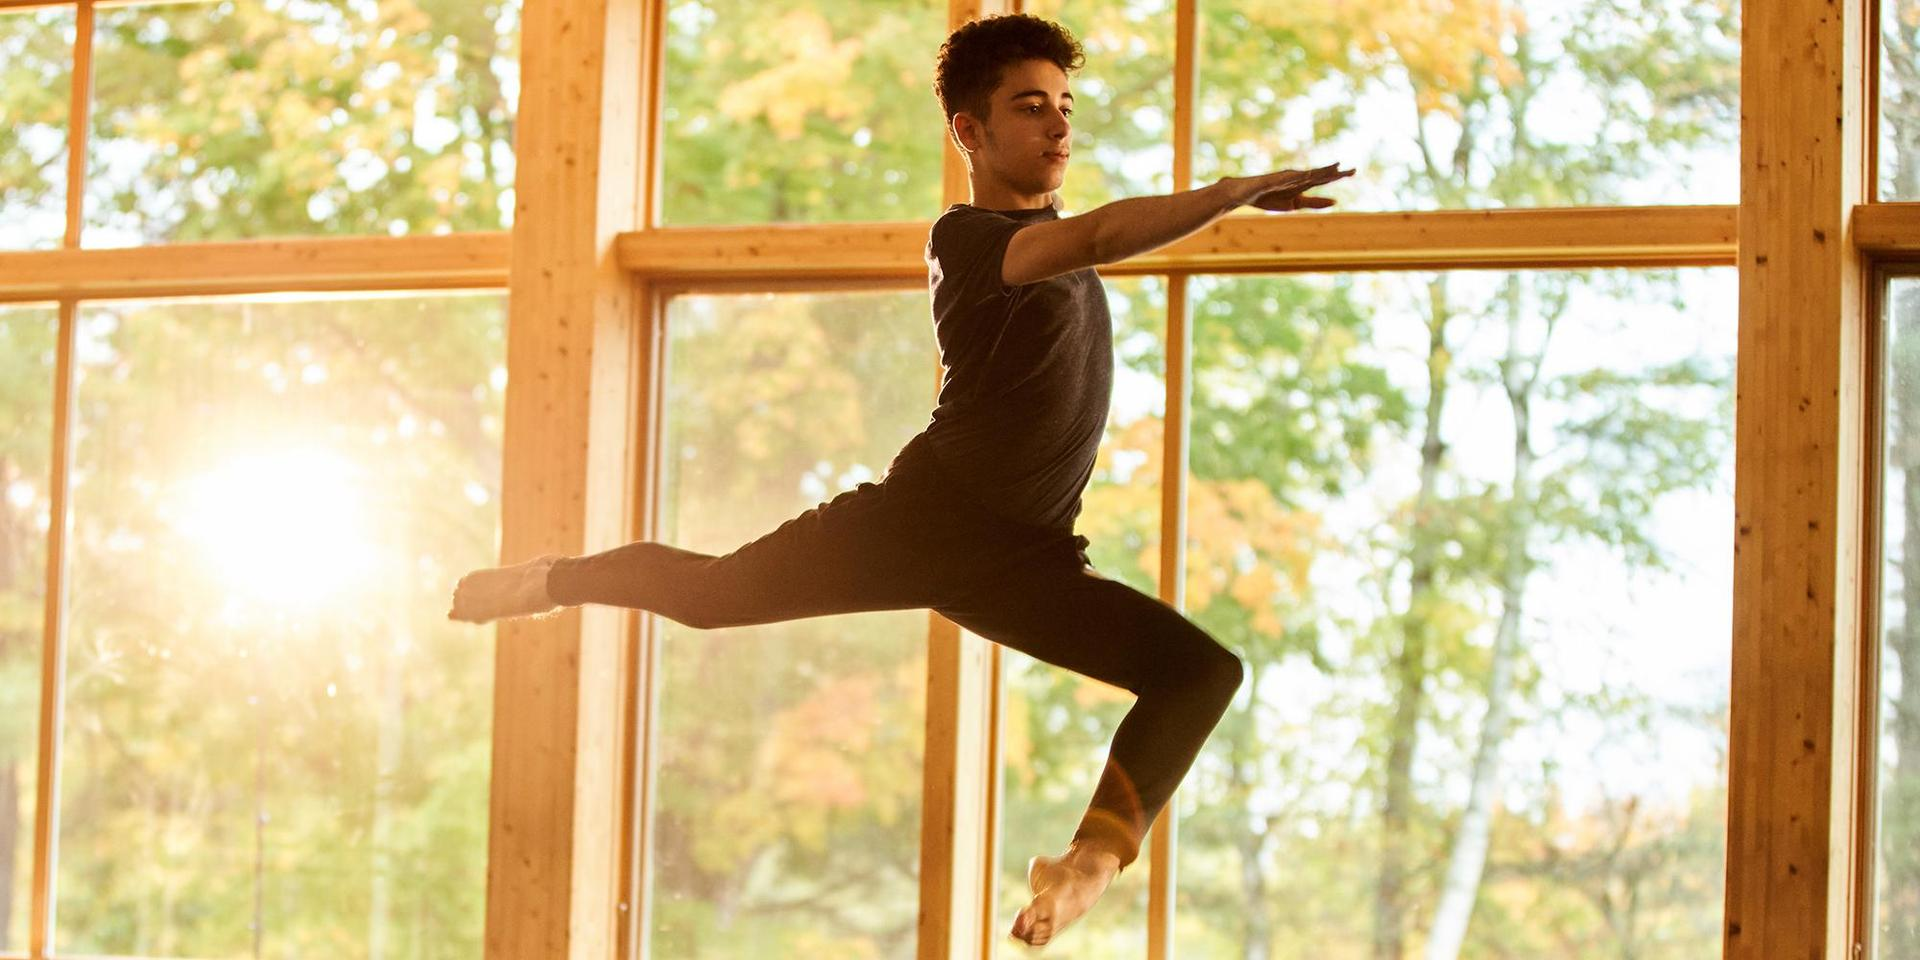 A student practices a leap during a dance class.